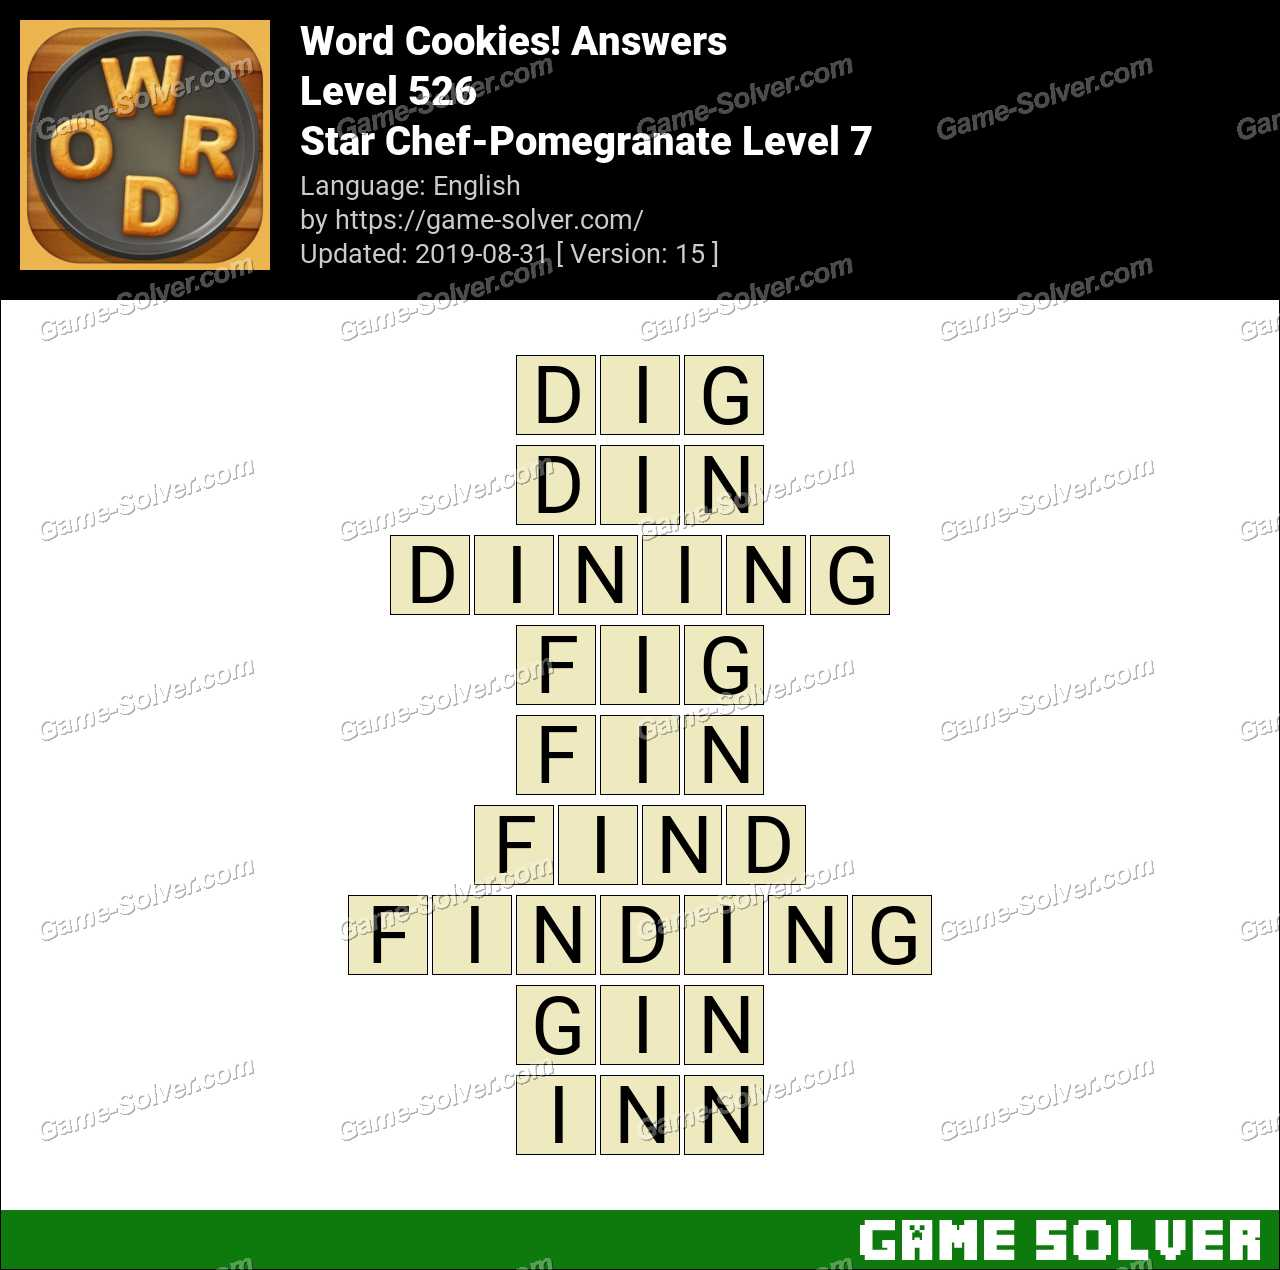 Word Cookies Star Chef-Pomegranate Level 7 Answers